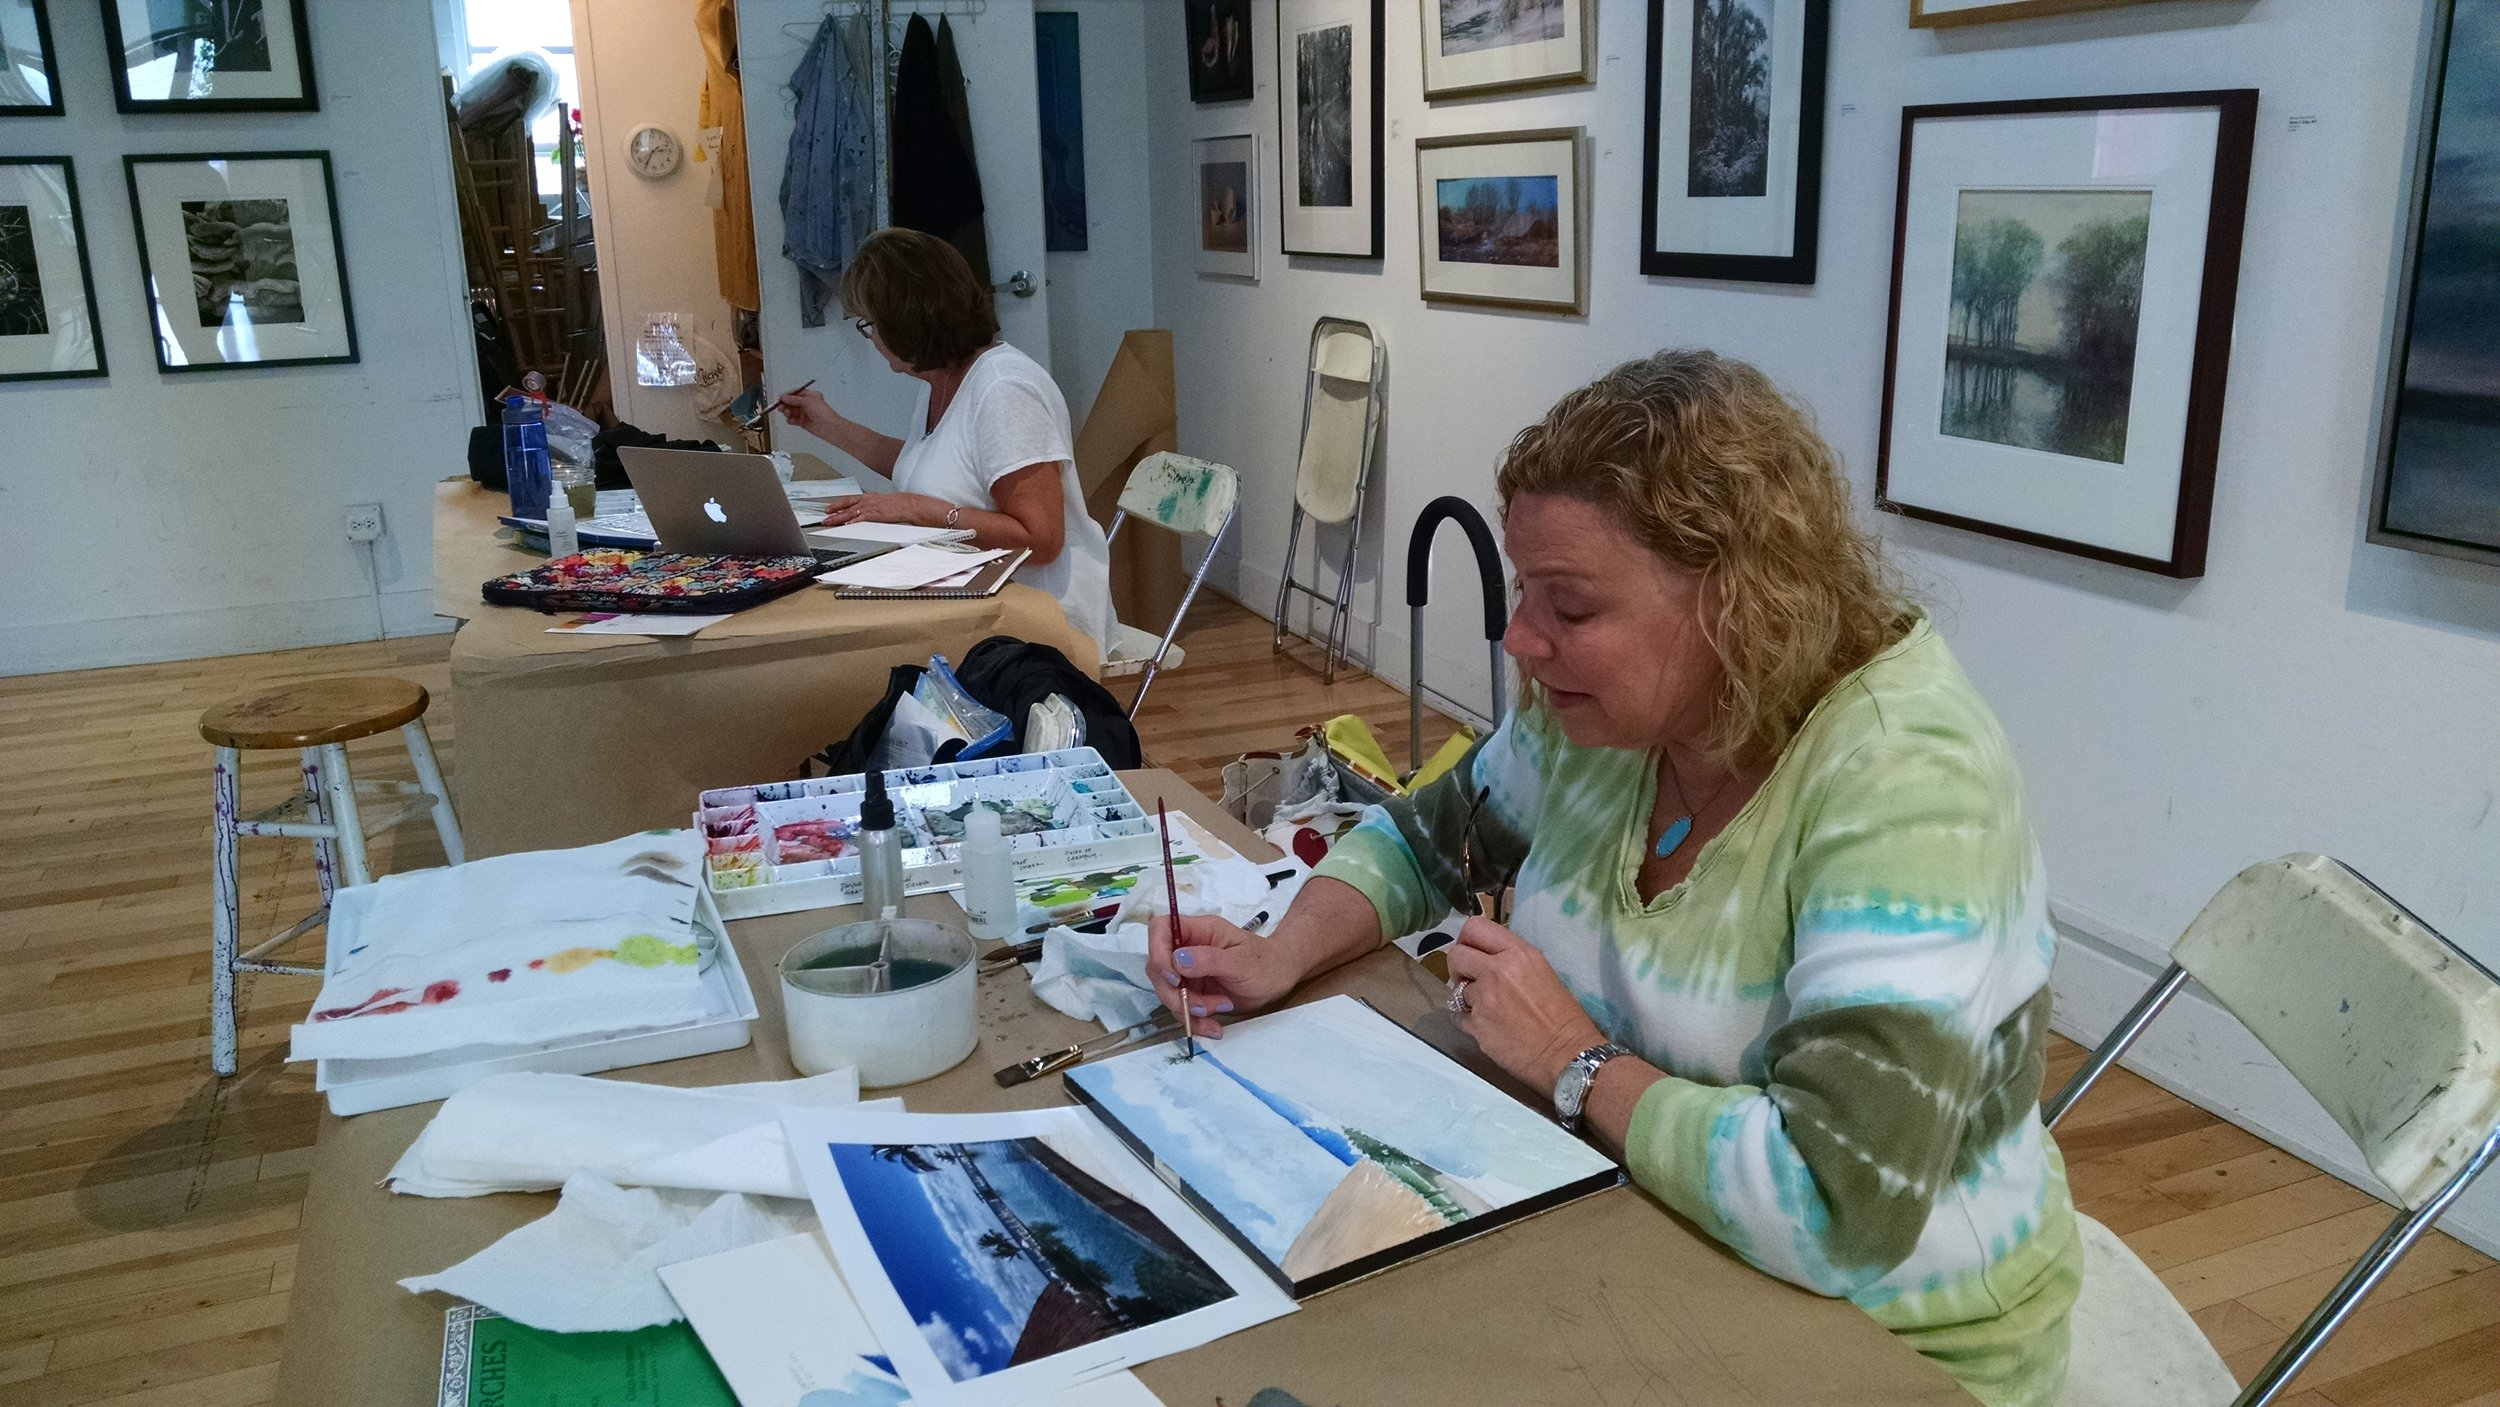 Watercolor Enhanced at The Art Center, HP - Wednesdays, April 5- May 31, 20171:00 – 3:30 p.m. (8 sessions)1957 Sheridan Rd., Highland Park, IllinoisCall 847-432-1888 to register or click hereHow do we enhance our watercolor paintings? With colored pencils, watercolor pencils, pastel and pen, we will make our paintings